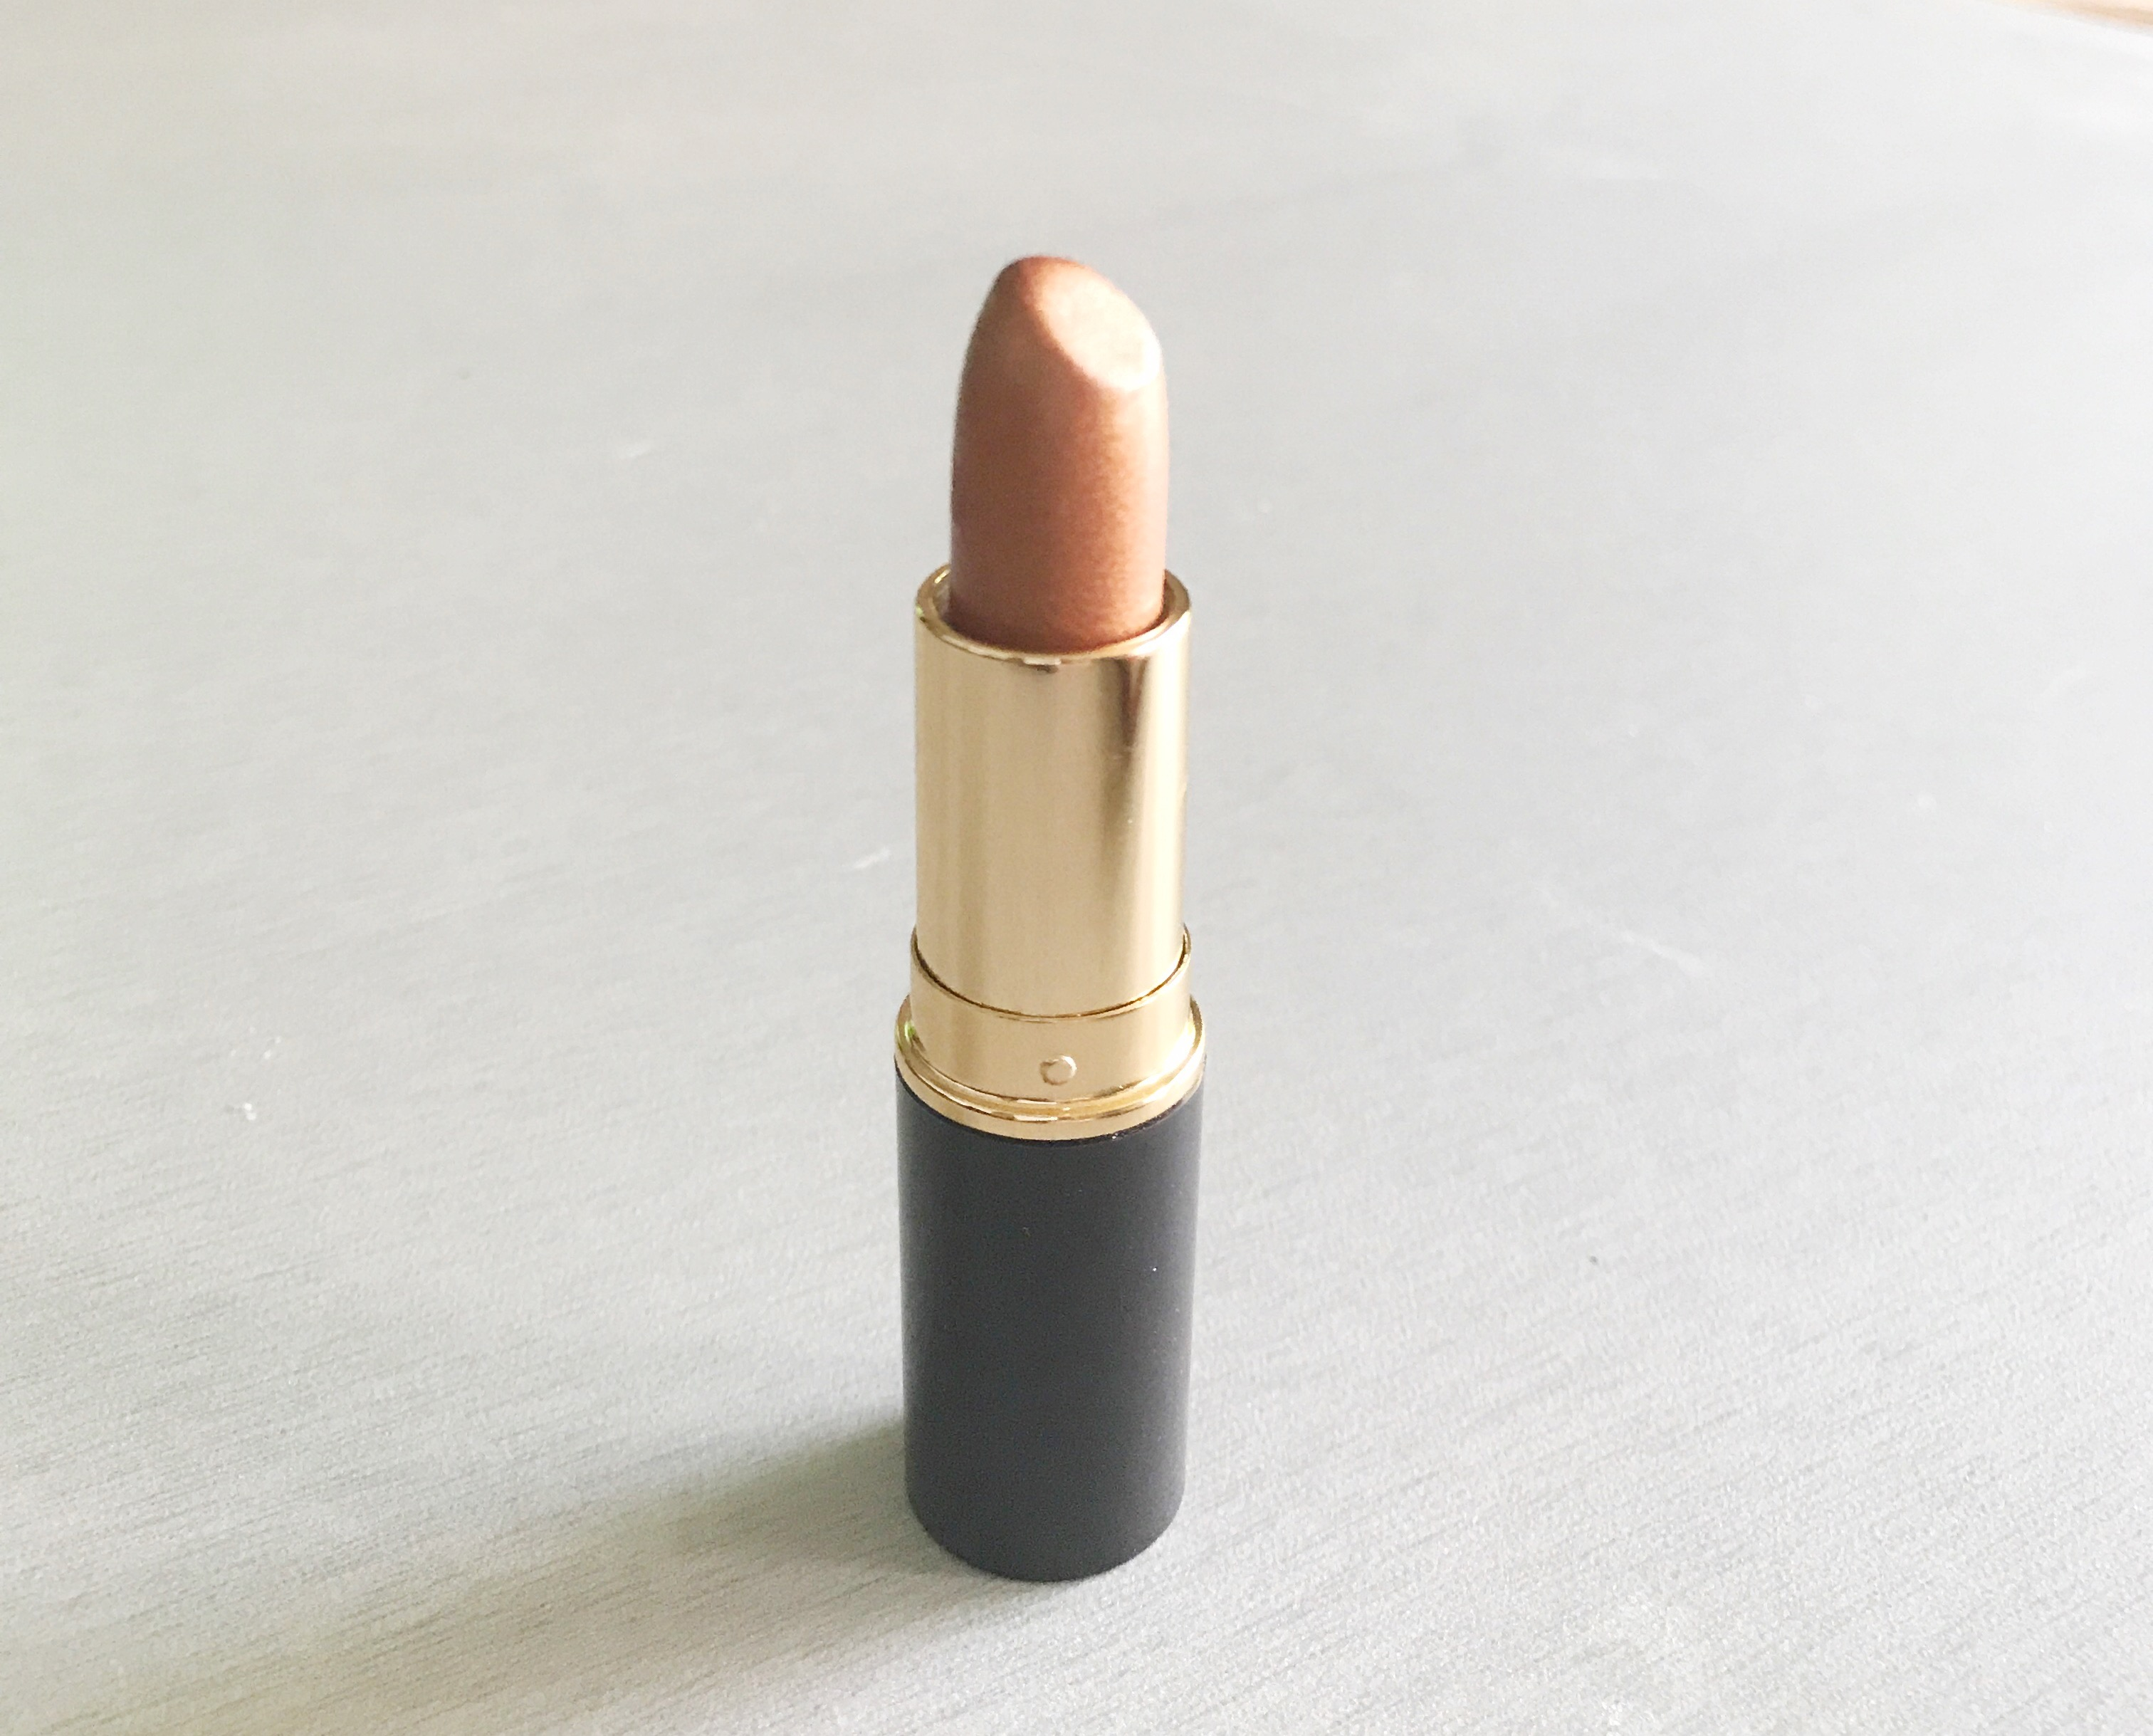 Iman Sheer Gold Lipstick